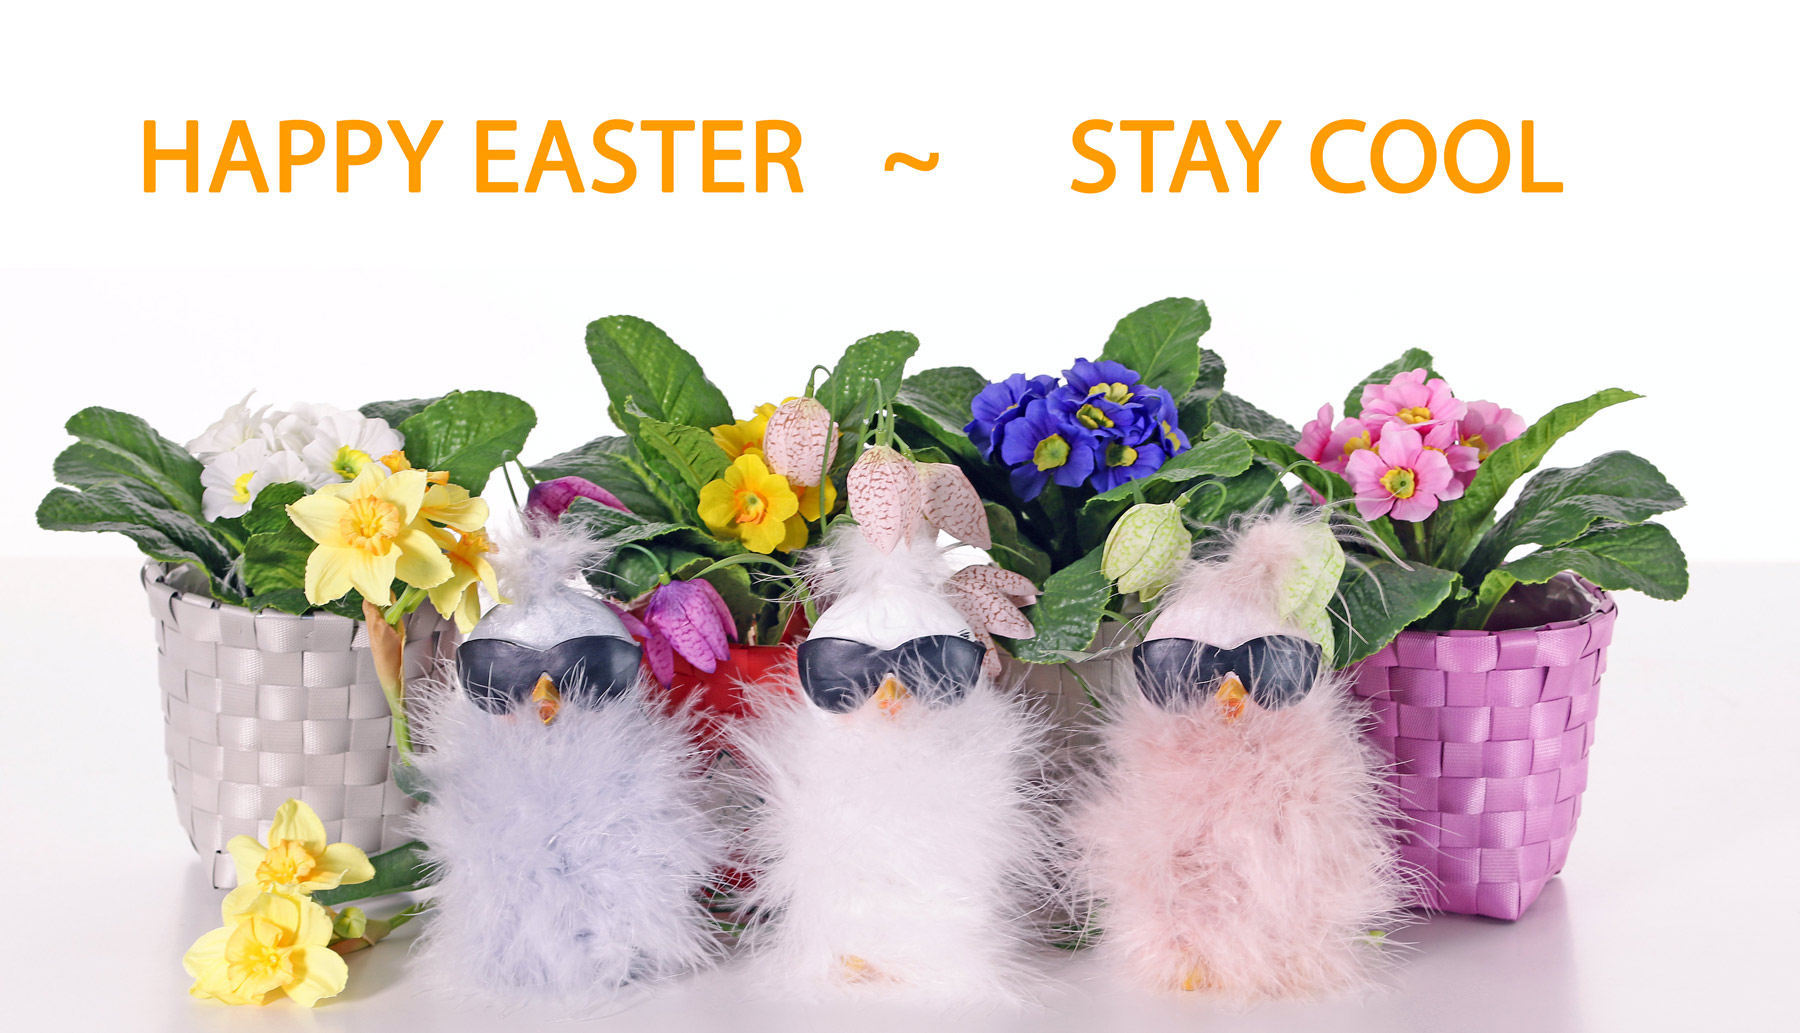 Happy Easter - Stay cool